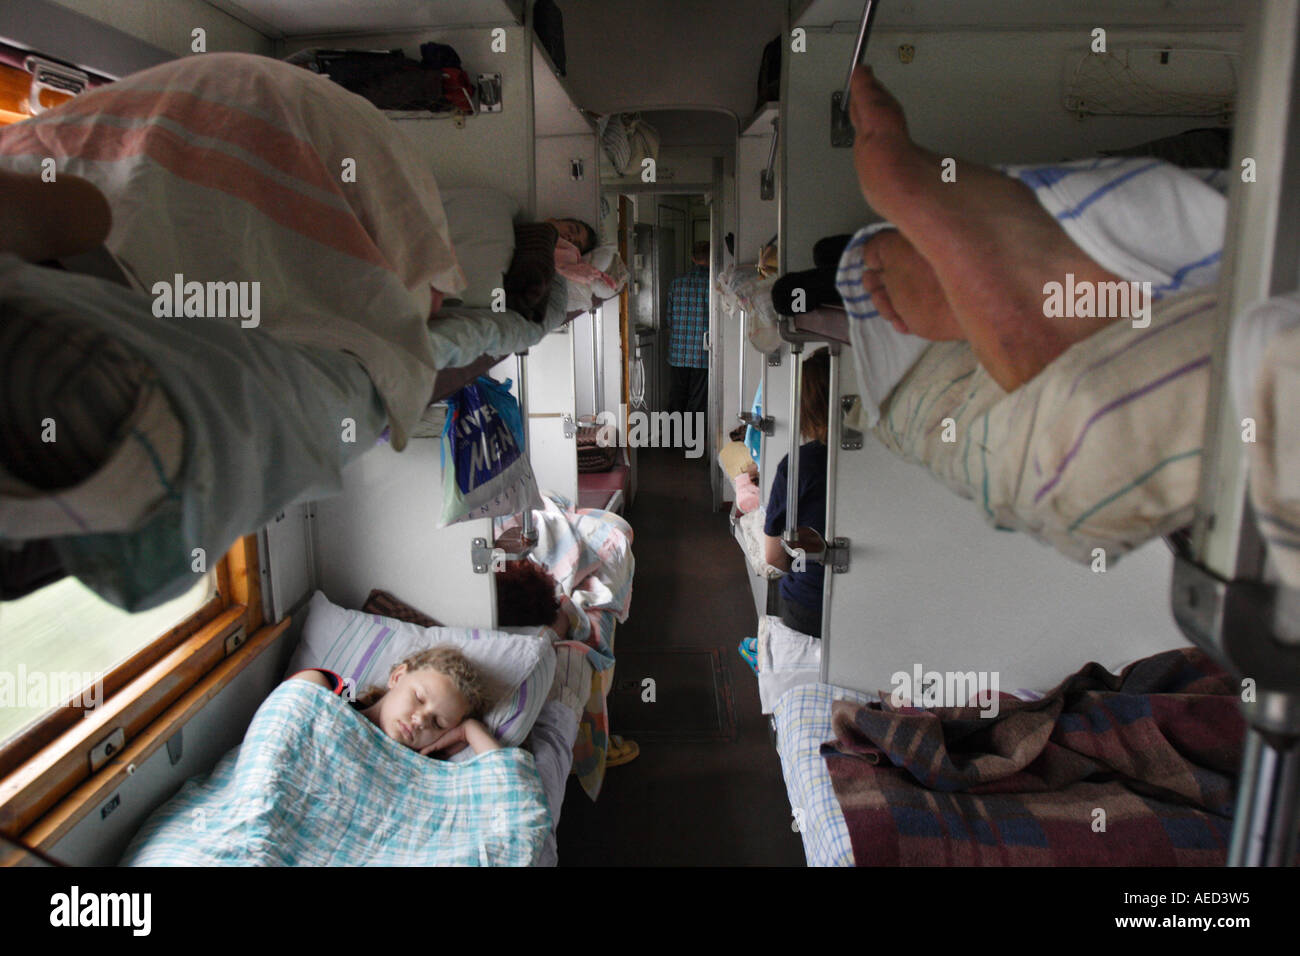 Hard or Sleeper carriage, Trans-Siberian Express, Russia - Stock Image